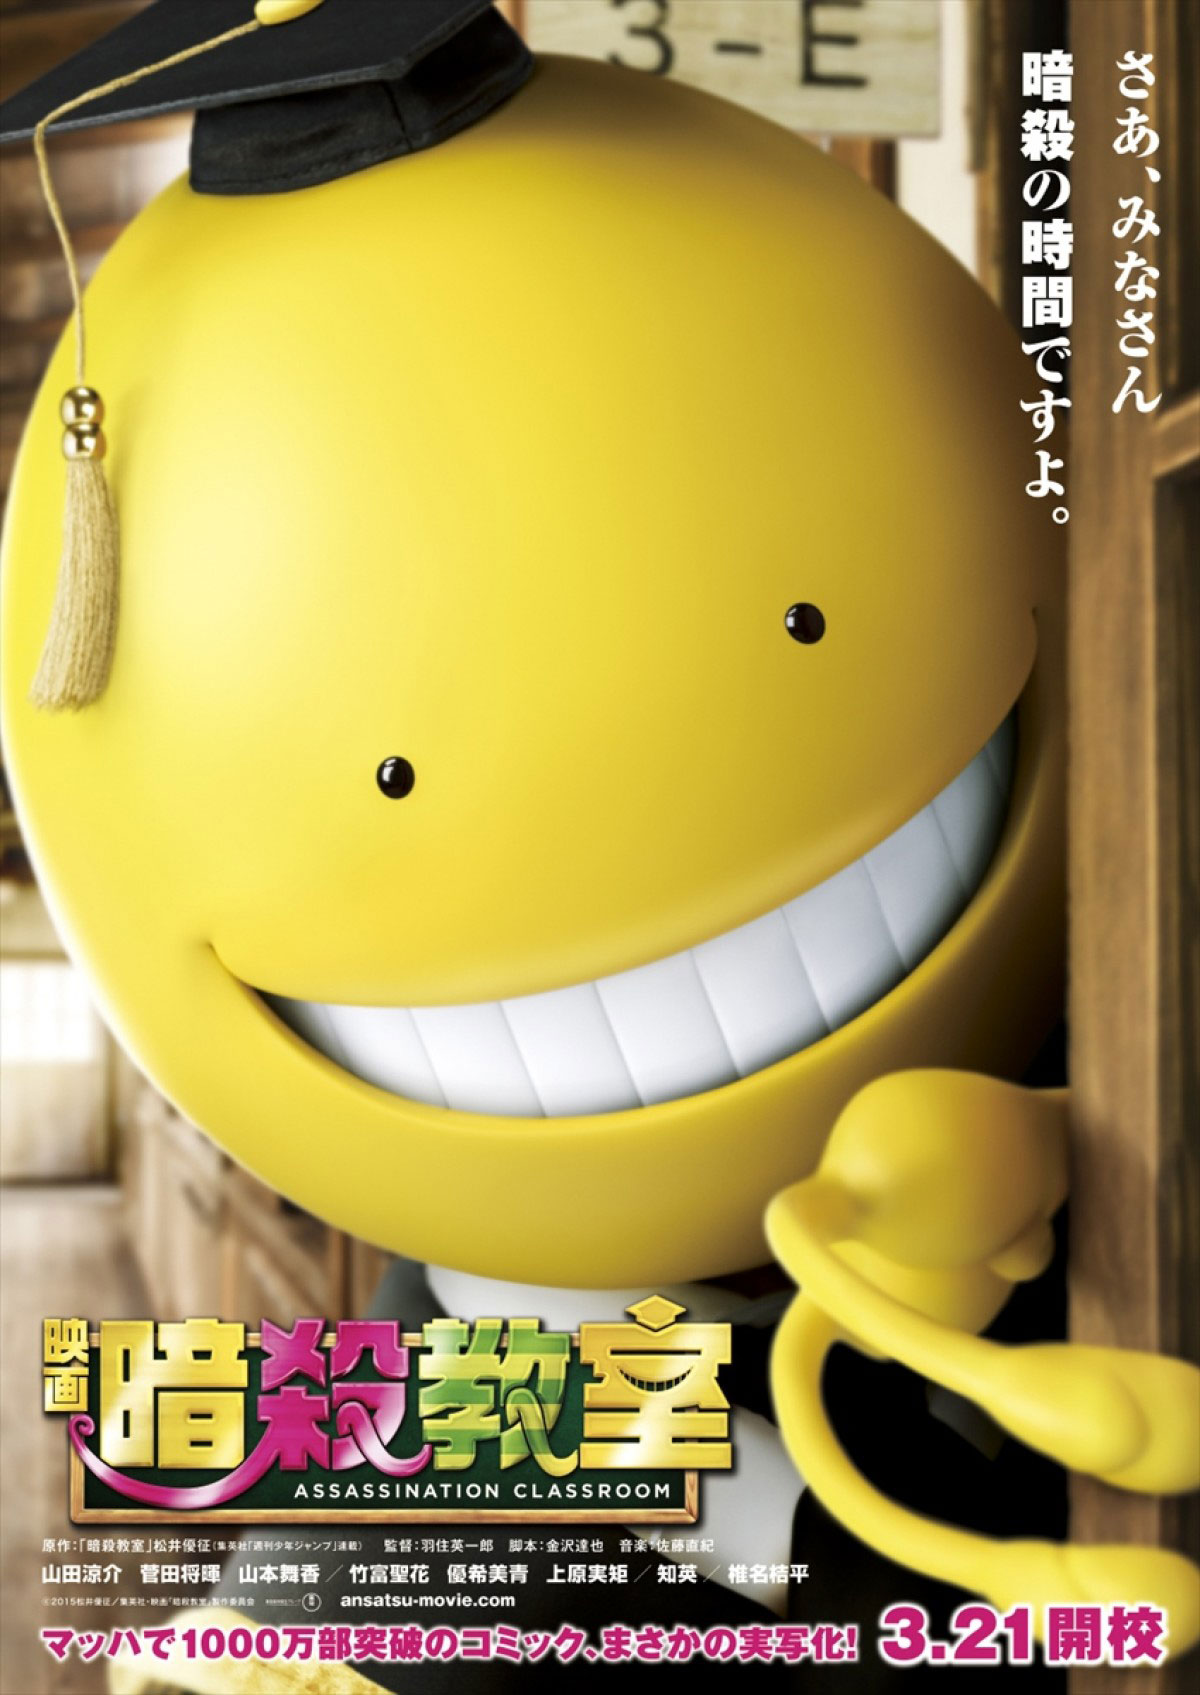 Assassination Classroom Japanese live action movie